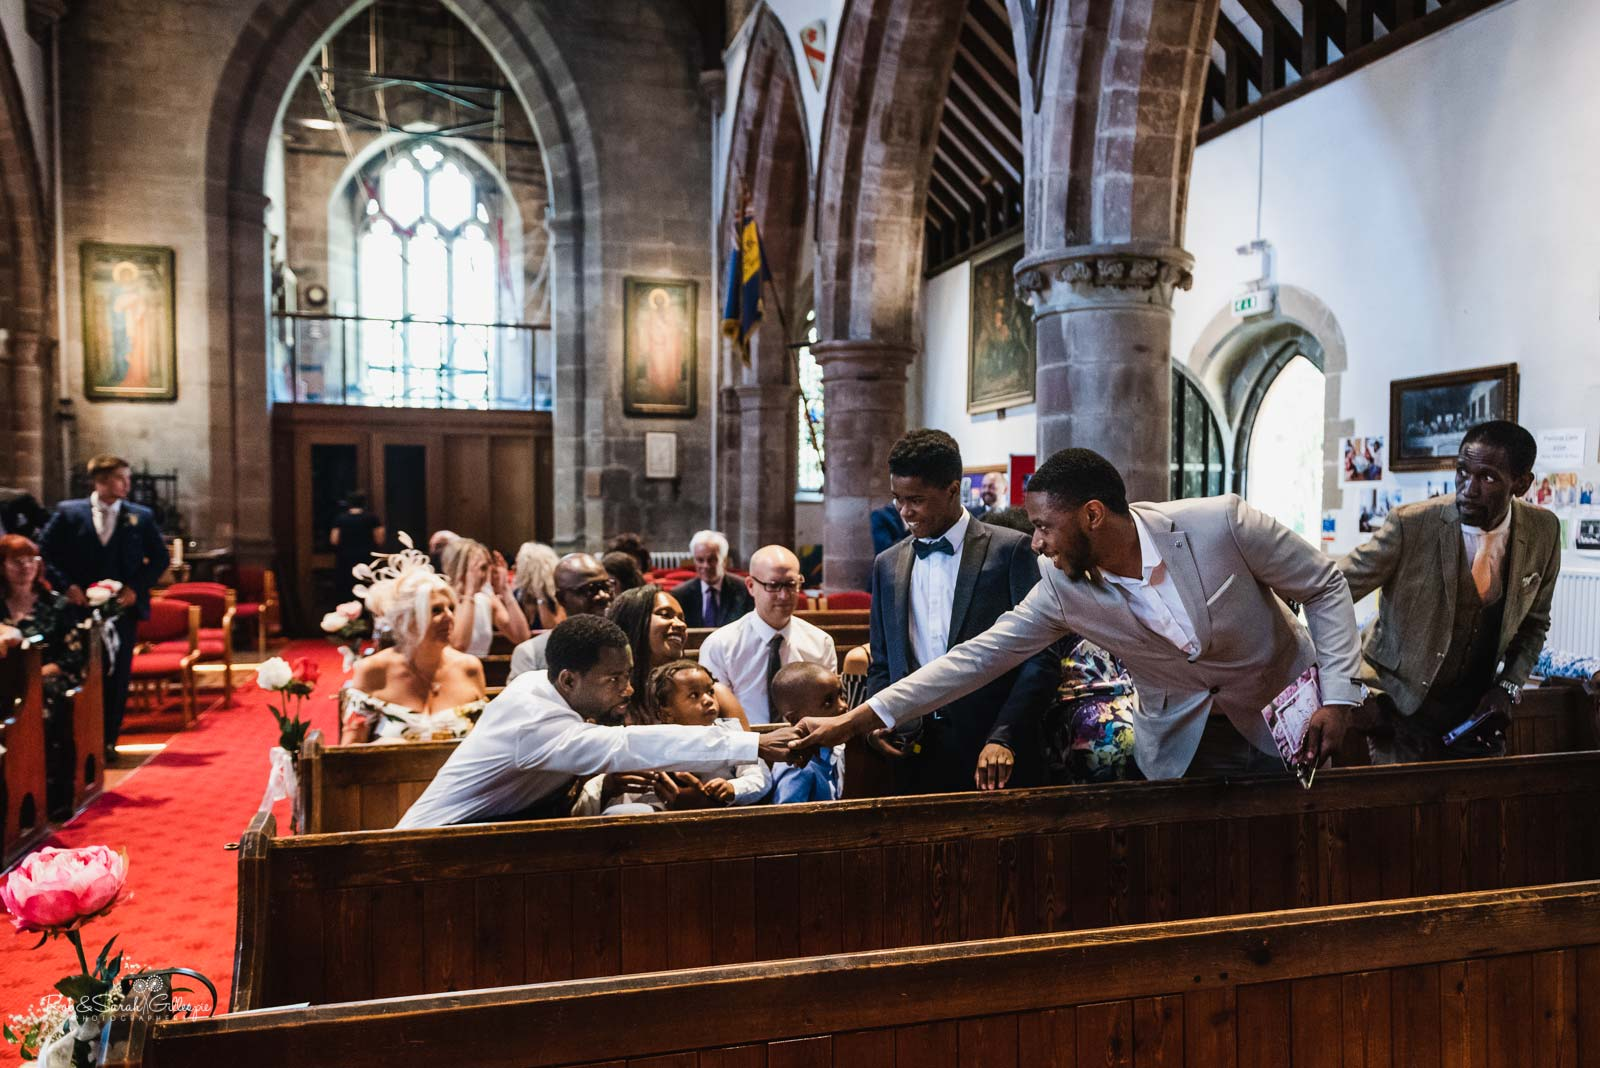 Wedding guests arrive at Hampton-in-Arden church